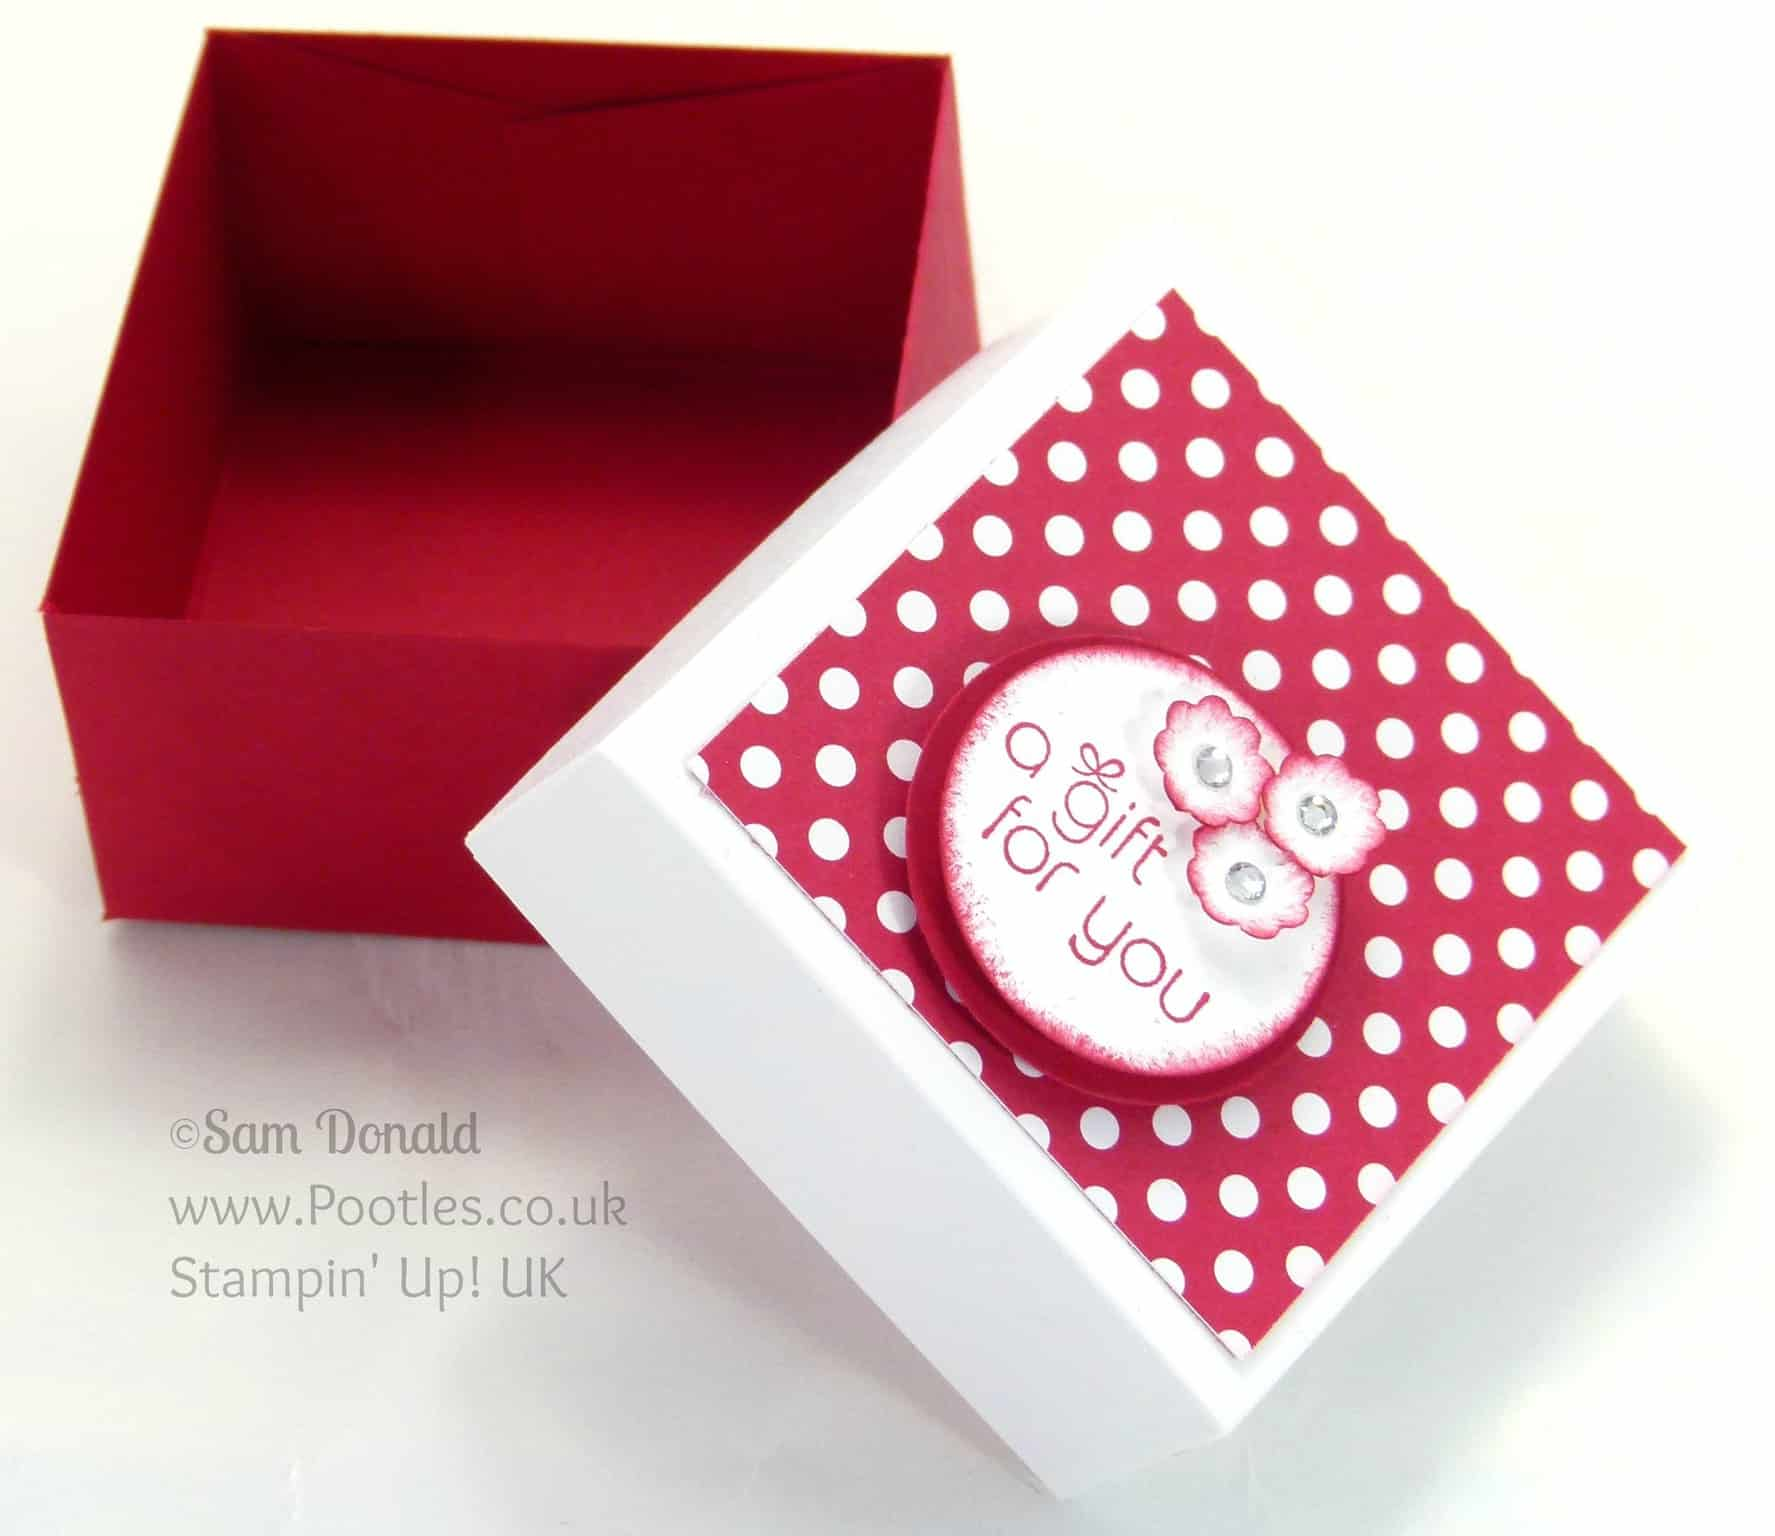 POOTLES Stampin' Up! UK The Spotty Box +Bonus Customer Gift Open